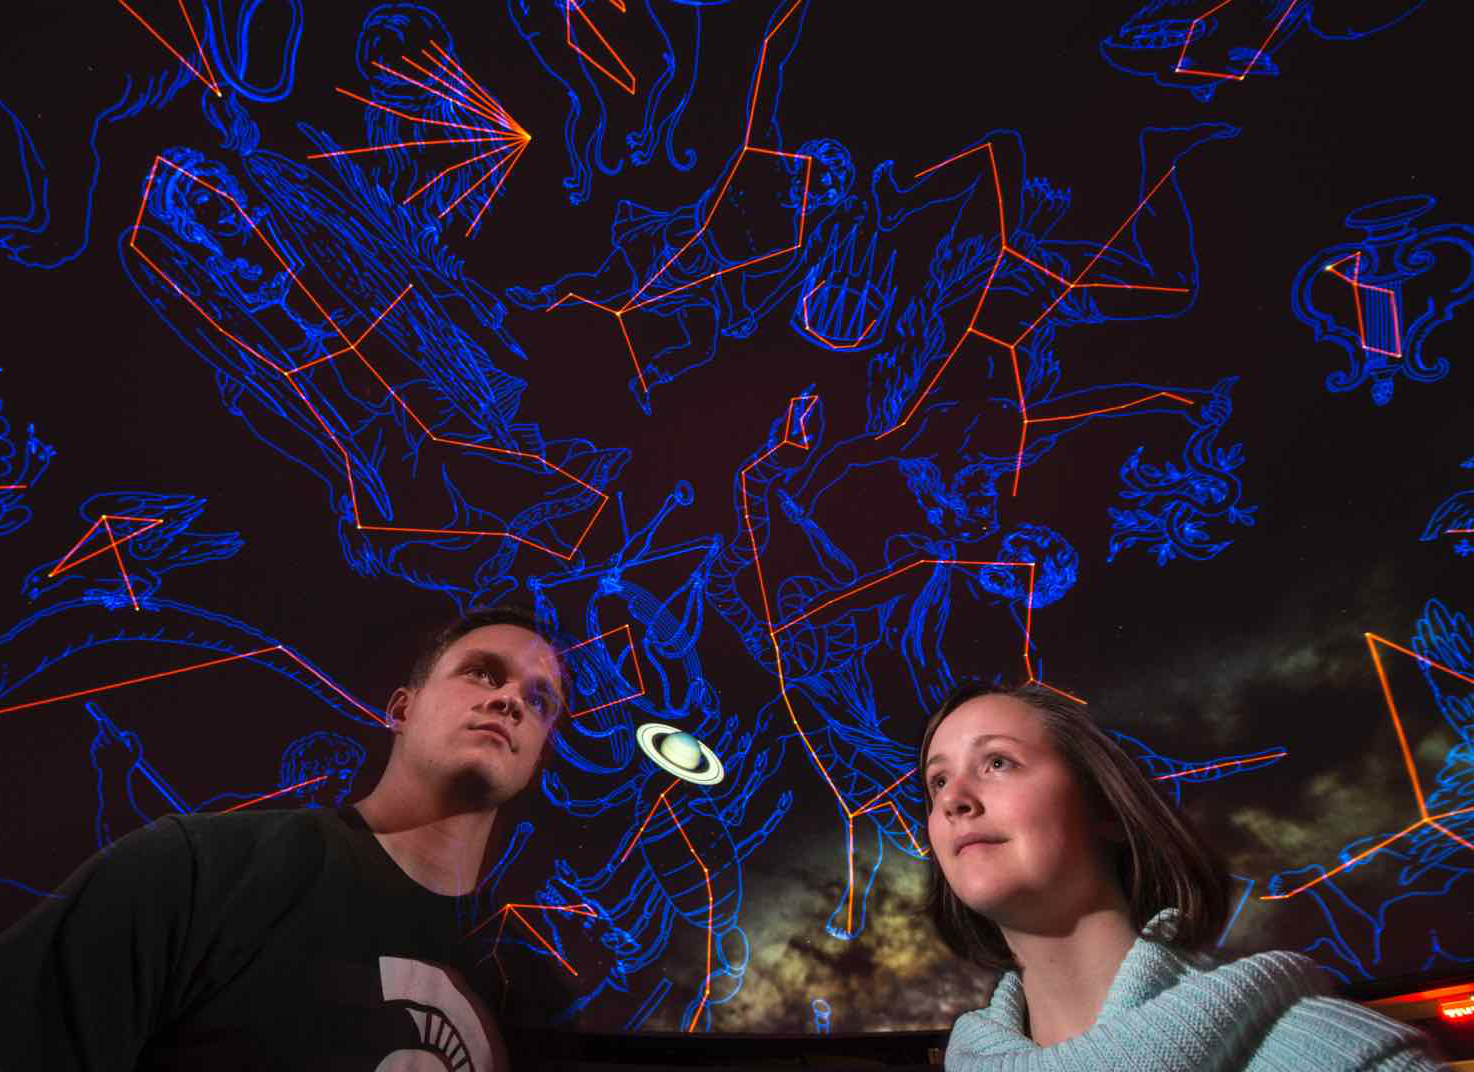 People gaze at constellations on the ceiling of the planetarium